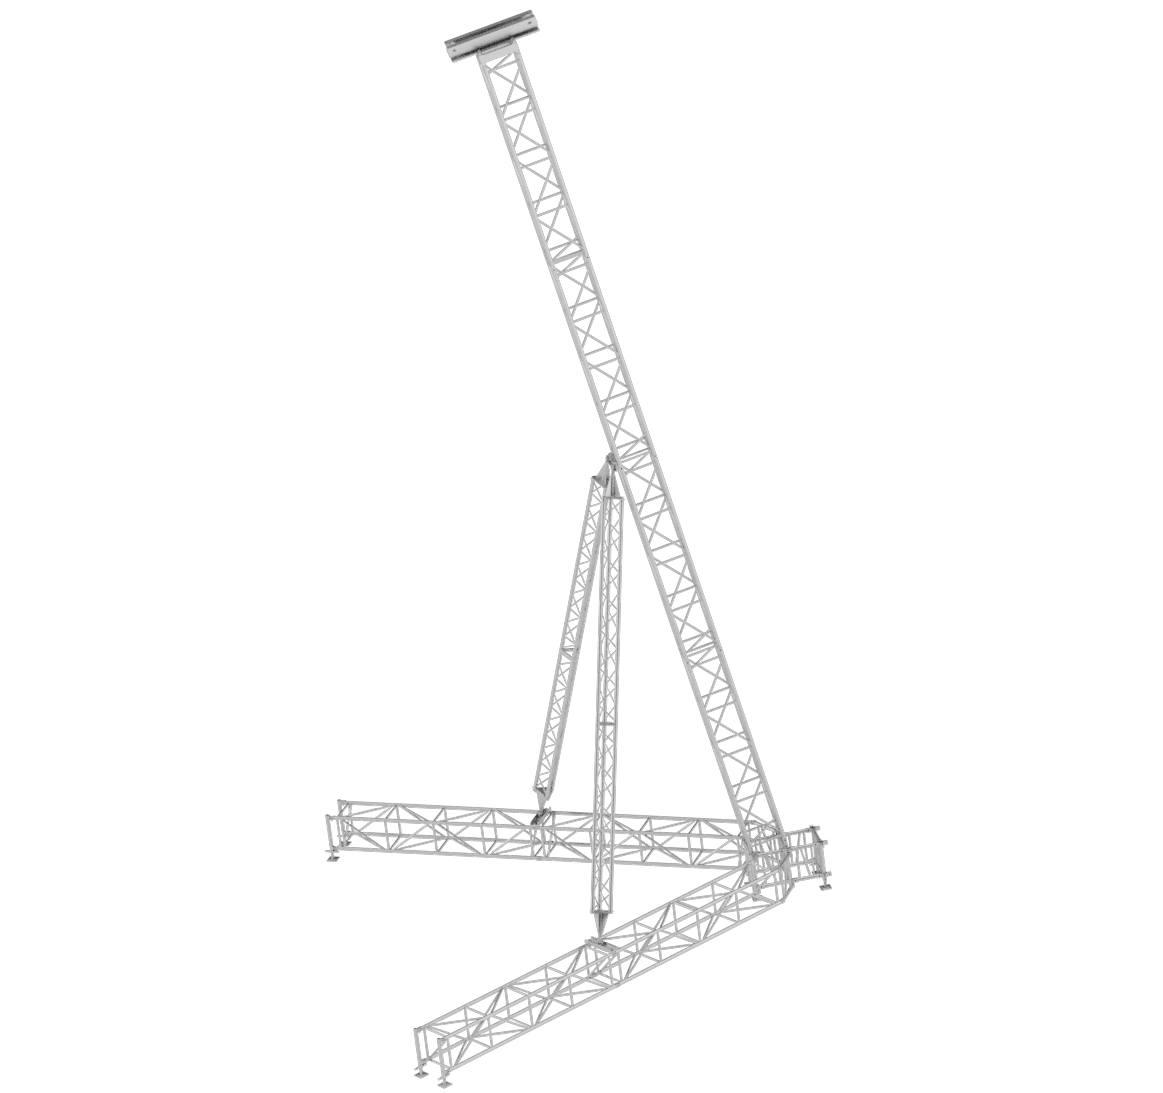 FLYINTOWER 13-1.400 - Support tover for 1,400kg up to 13m